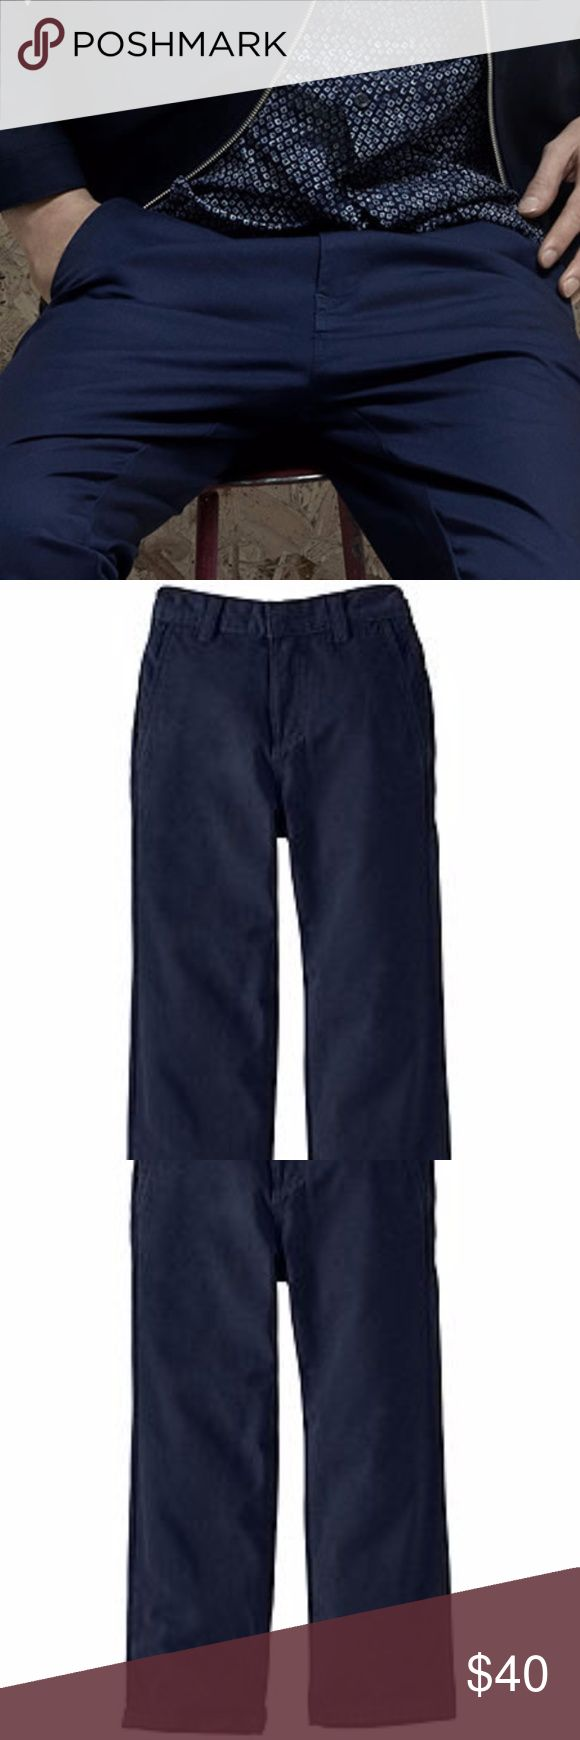 "Theory Navy Blue Chinos 34/31 Very versatile and lightweight navy blue pants. Clasp and zipper front closure with 4 pocket design. 100% cotton, style is BAENA B.  Go casual or dressy.  Approx. Measurements: Inseam: 31"" Flat waist: 17.5 Rise: 10"" Back: 12.5"" Leg opening: 7.5"" Theory Pants Chinos & Khakis"